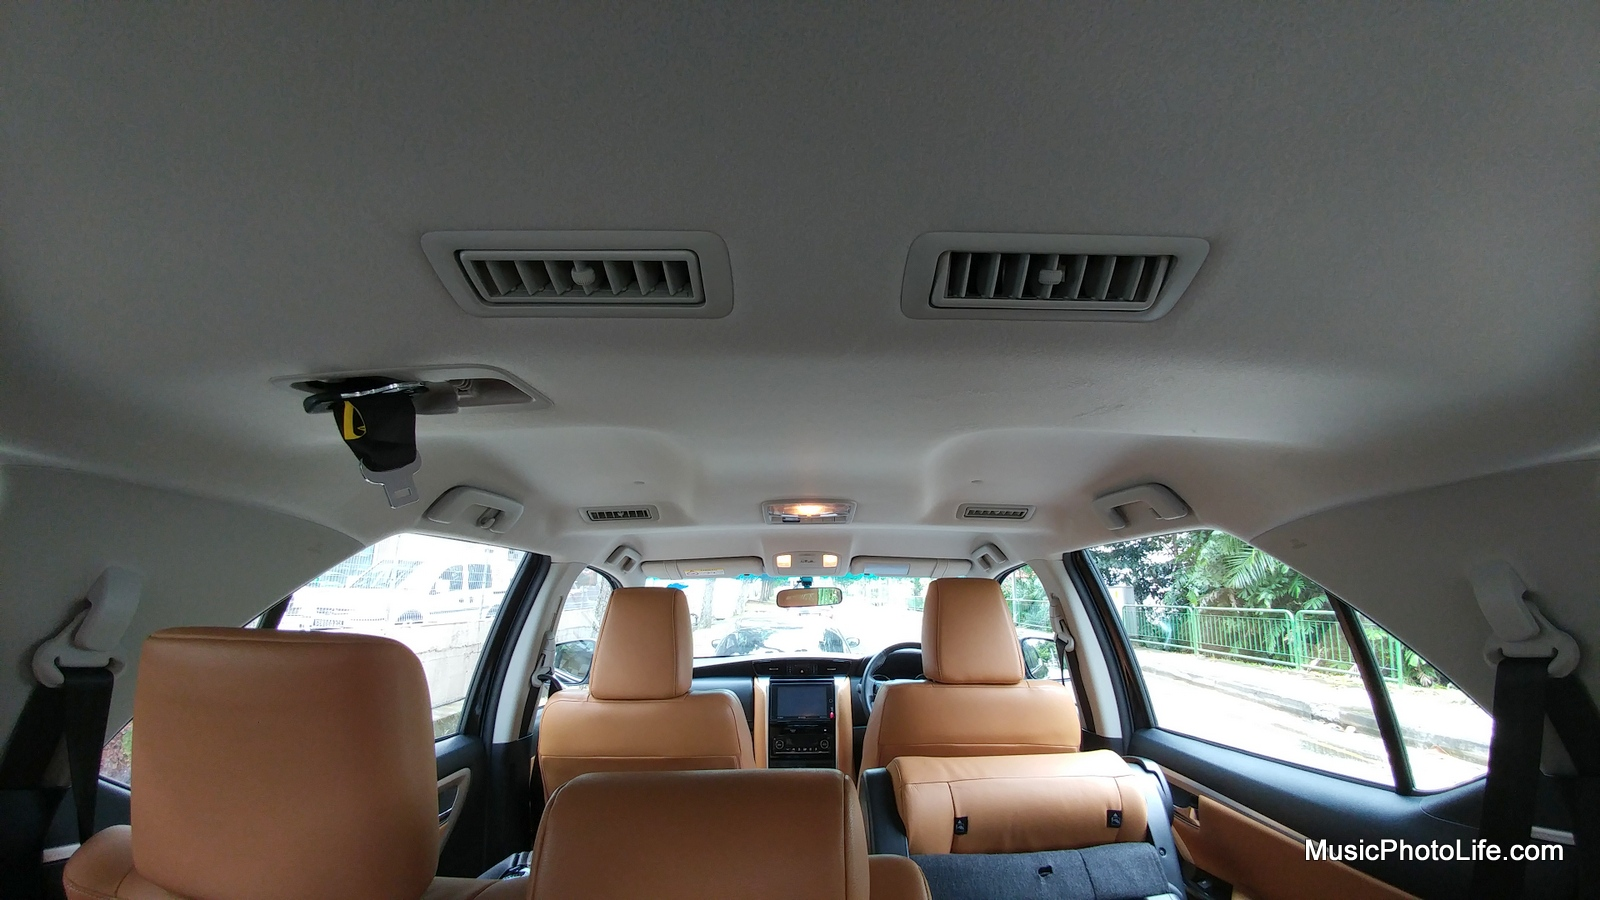 Toytota Fortuner aircon vents above the roof